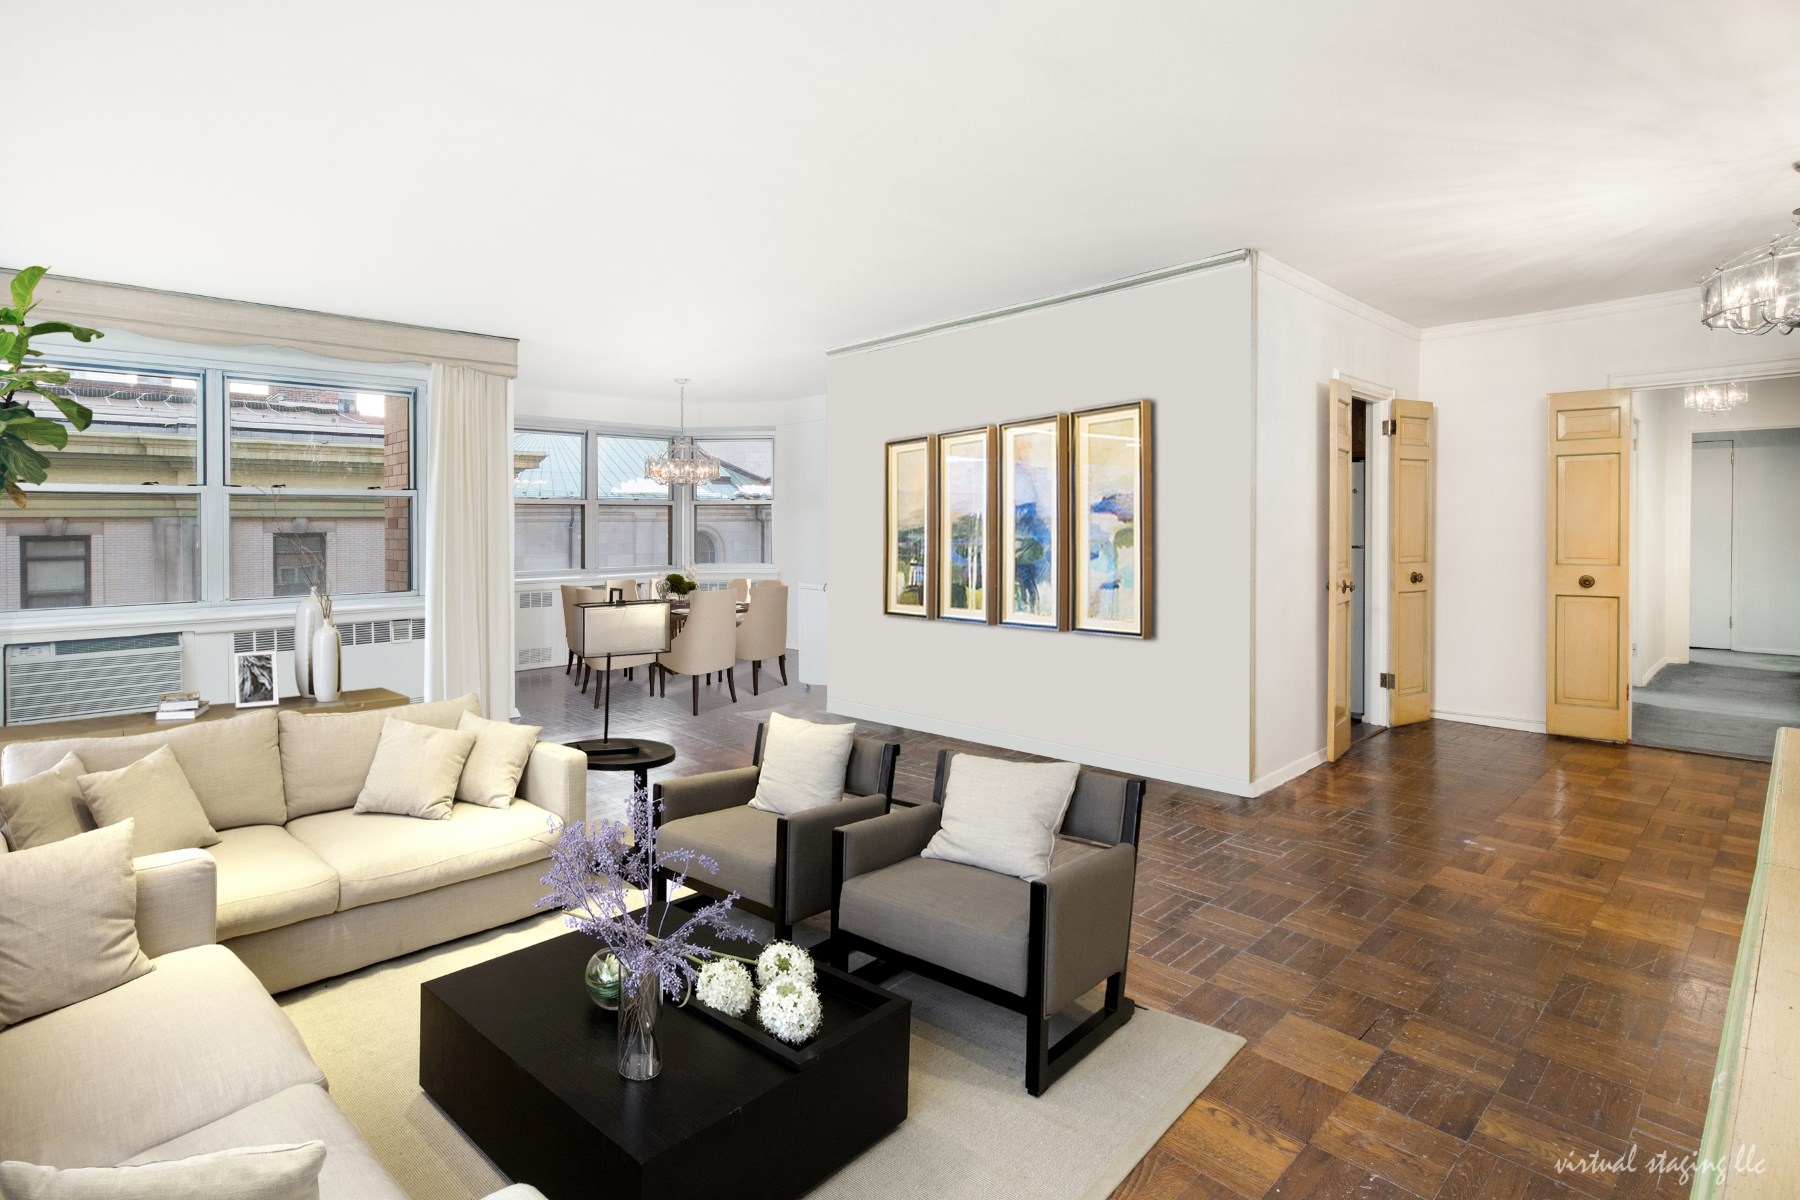 Co-op for Sale at Opportunity Awaits 155 East 76th Street Apt 8e Upper East Side, New York, New York 10021 United States